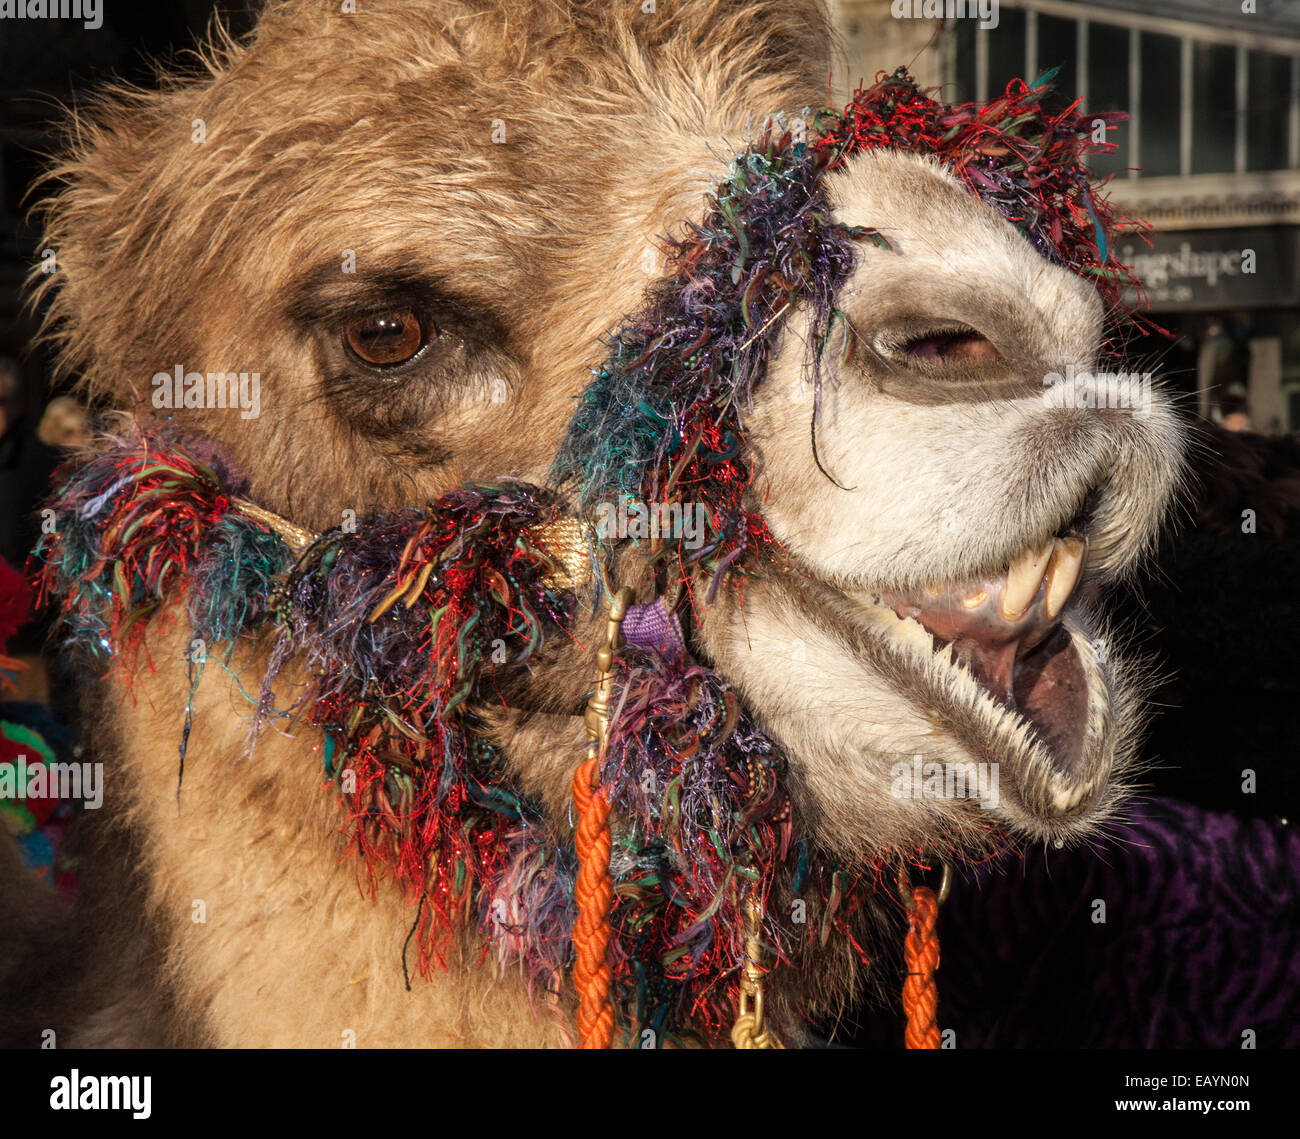 camel christmas stockfotos camel christmas bilder seite 2 alamy. Black Bedroom Furniture Sets. Home Design Ideas